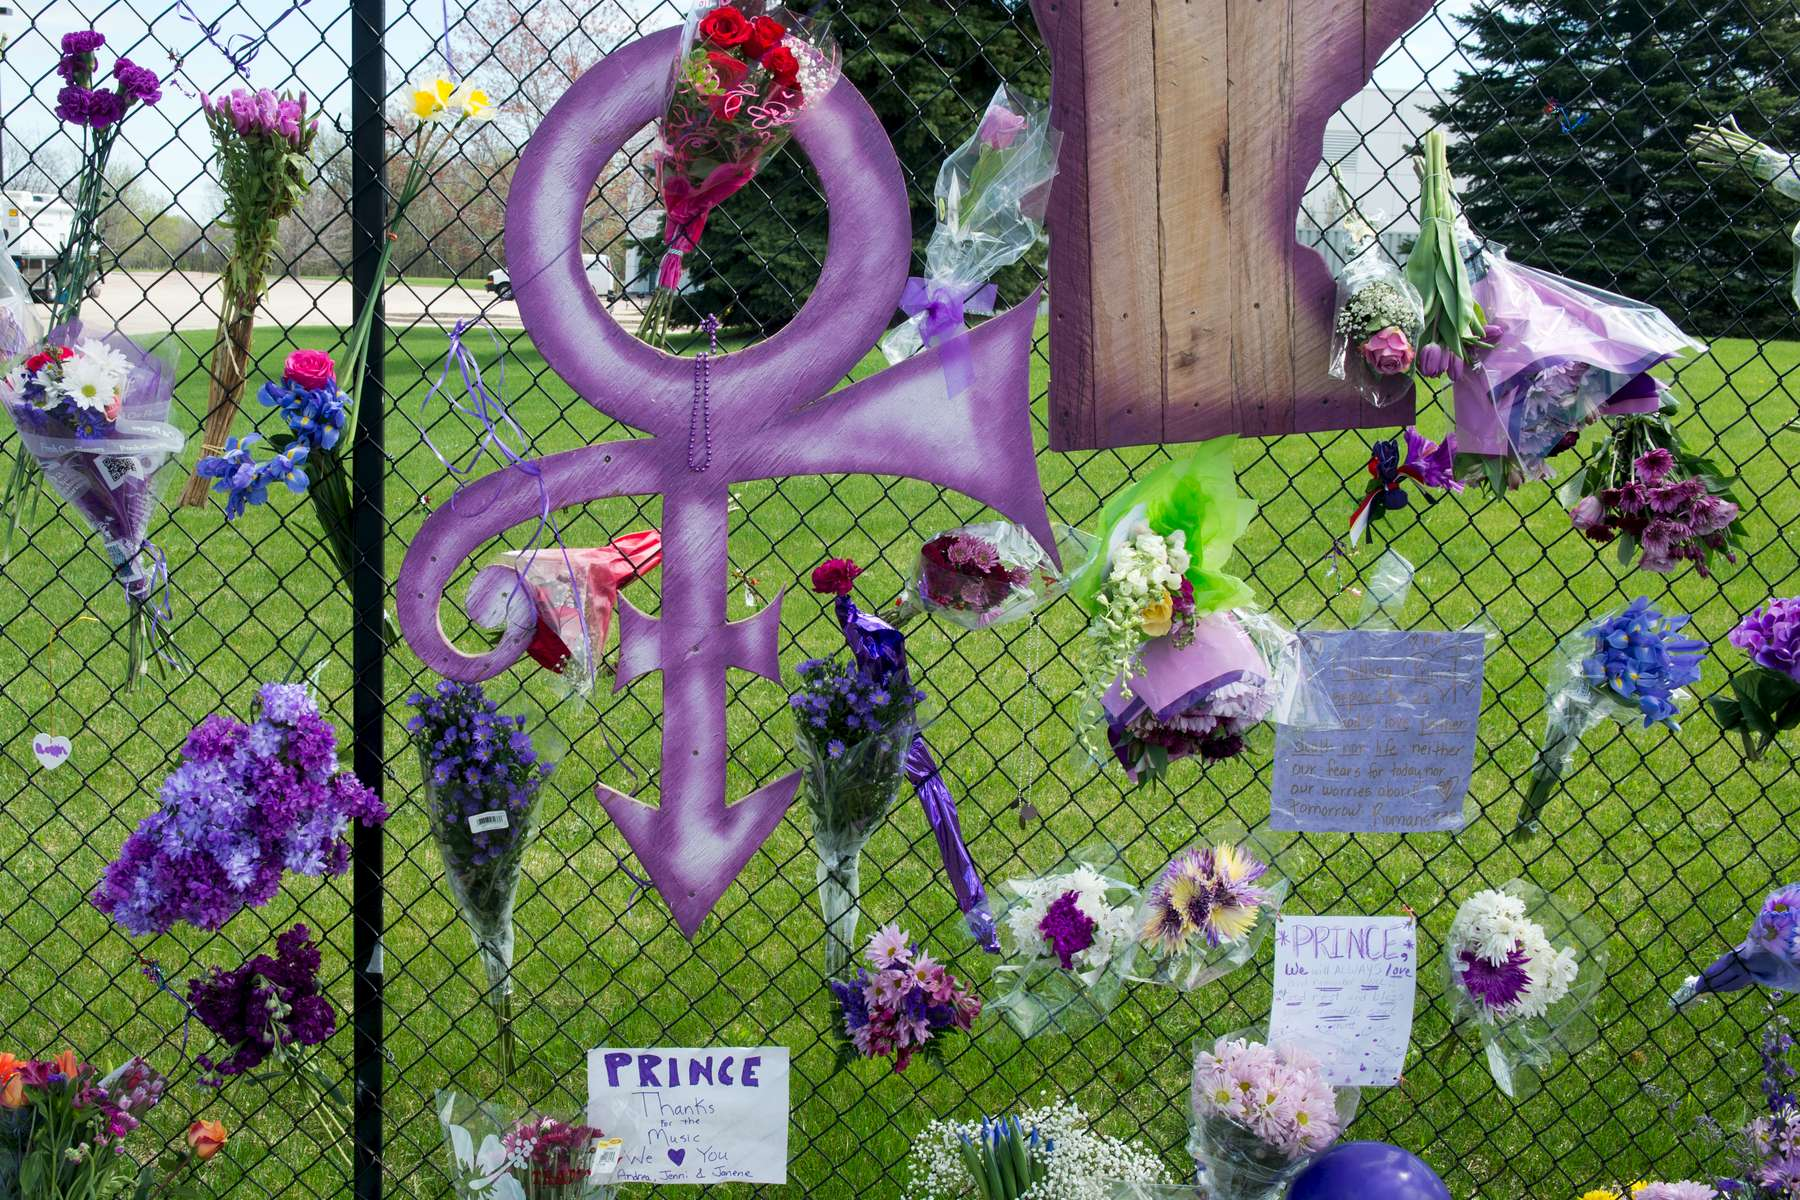 Hundreds of fans and supporters pay respect at the makeshift memorial dedicated to 57-year-old musician Prince, who died in his home studio in Paisley Park located at 7801 Audubon Road in Chanhassen, Minnesota on Saturday, April 23, 2016.